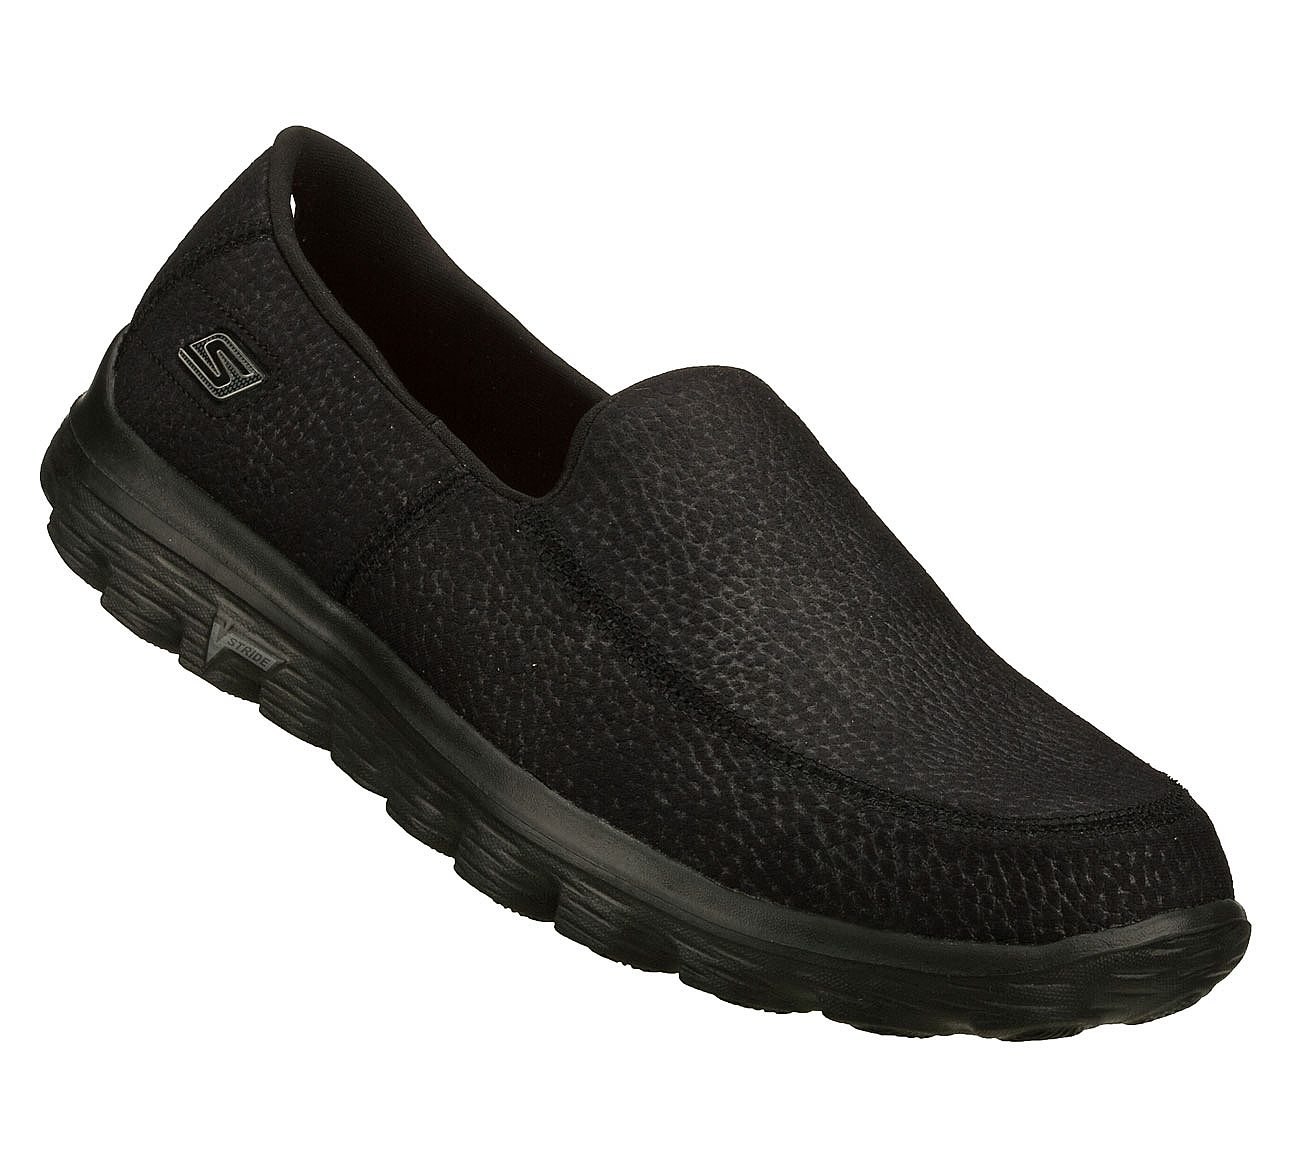 Skechers GOwalk 2 - Coast Walking Shoes